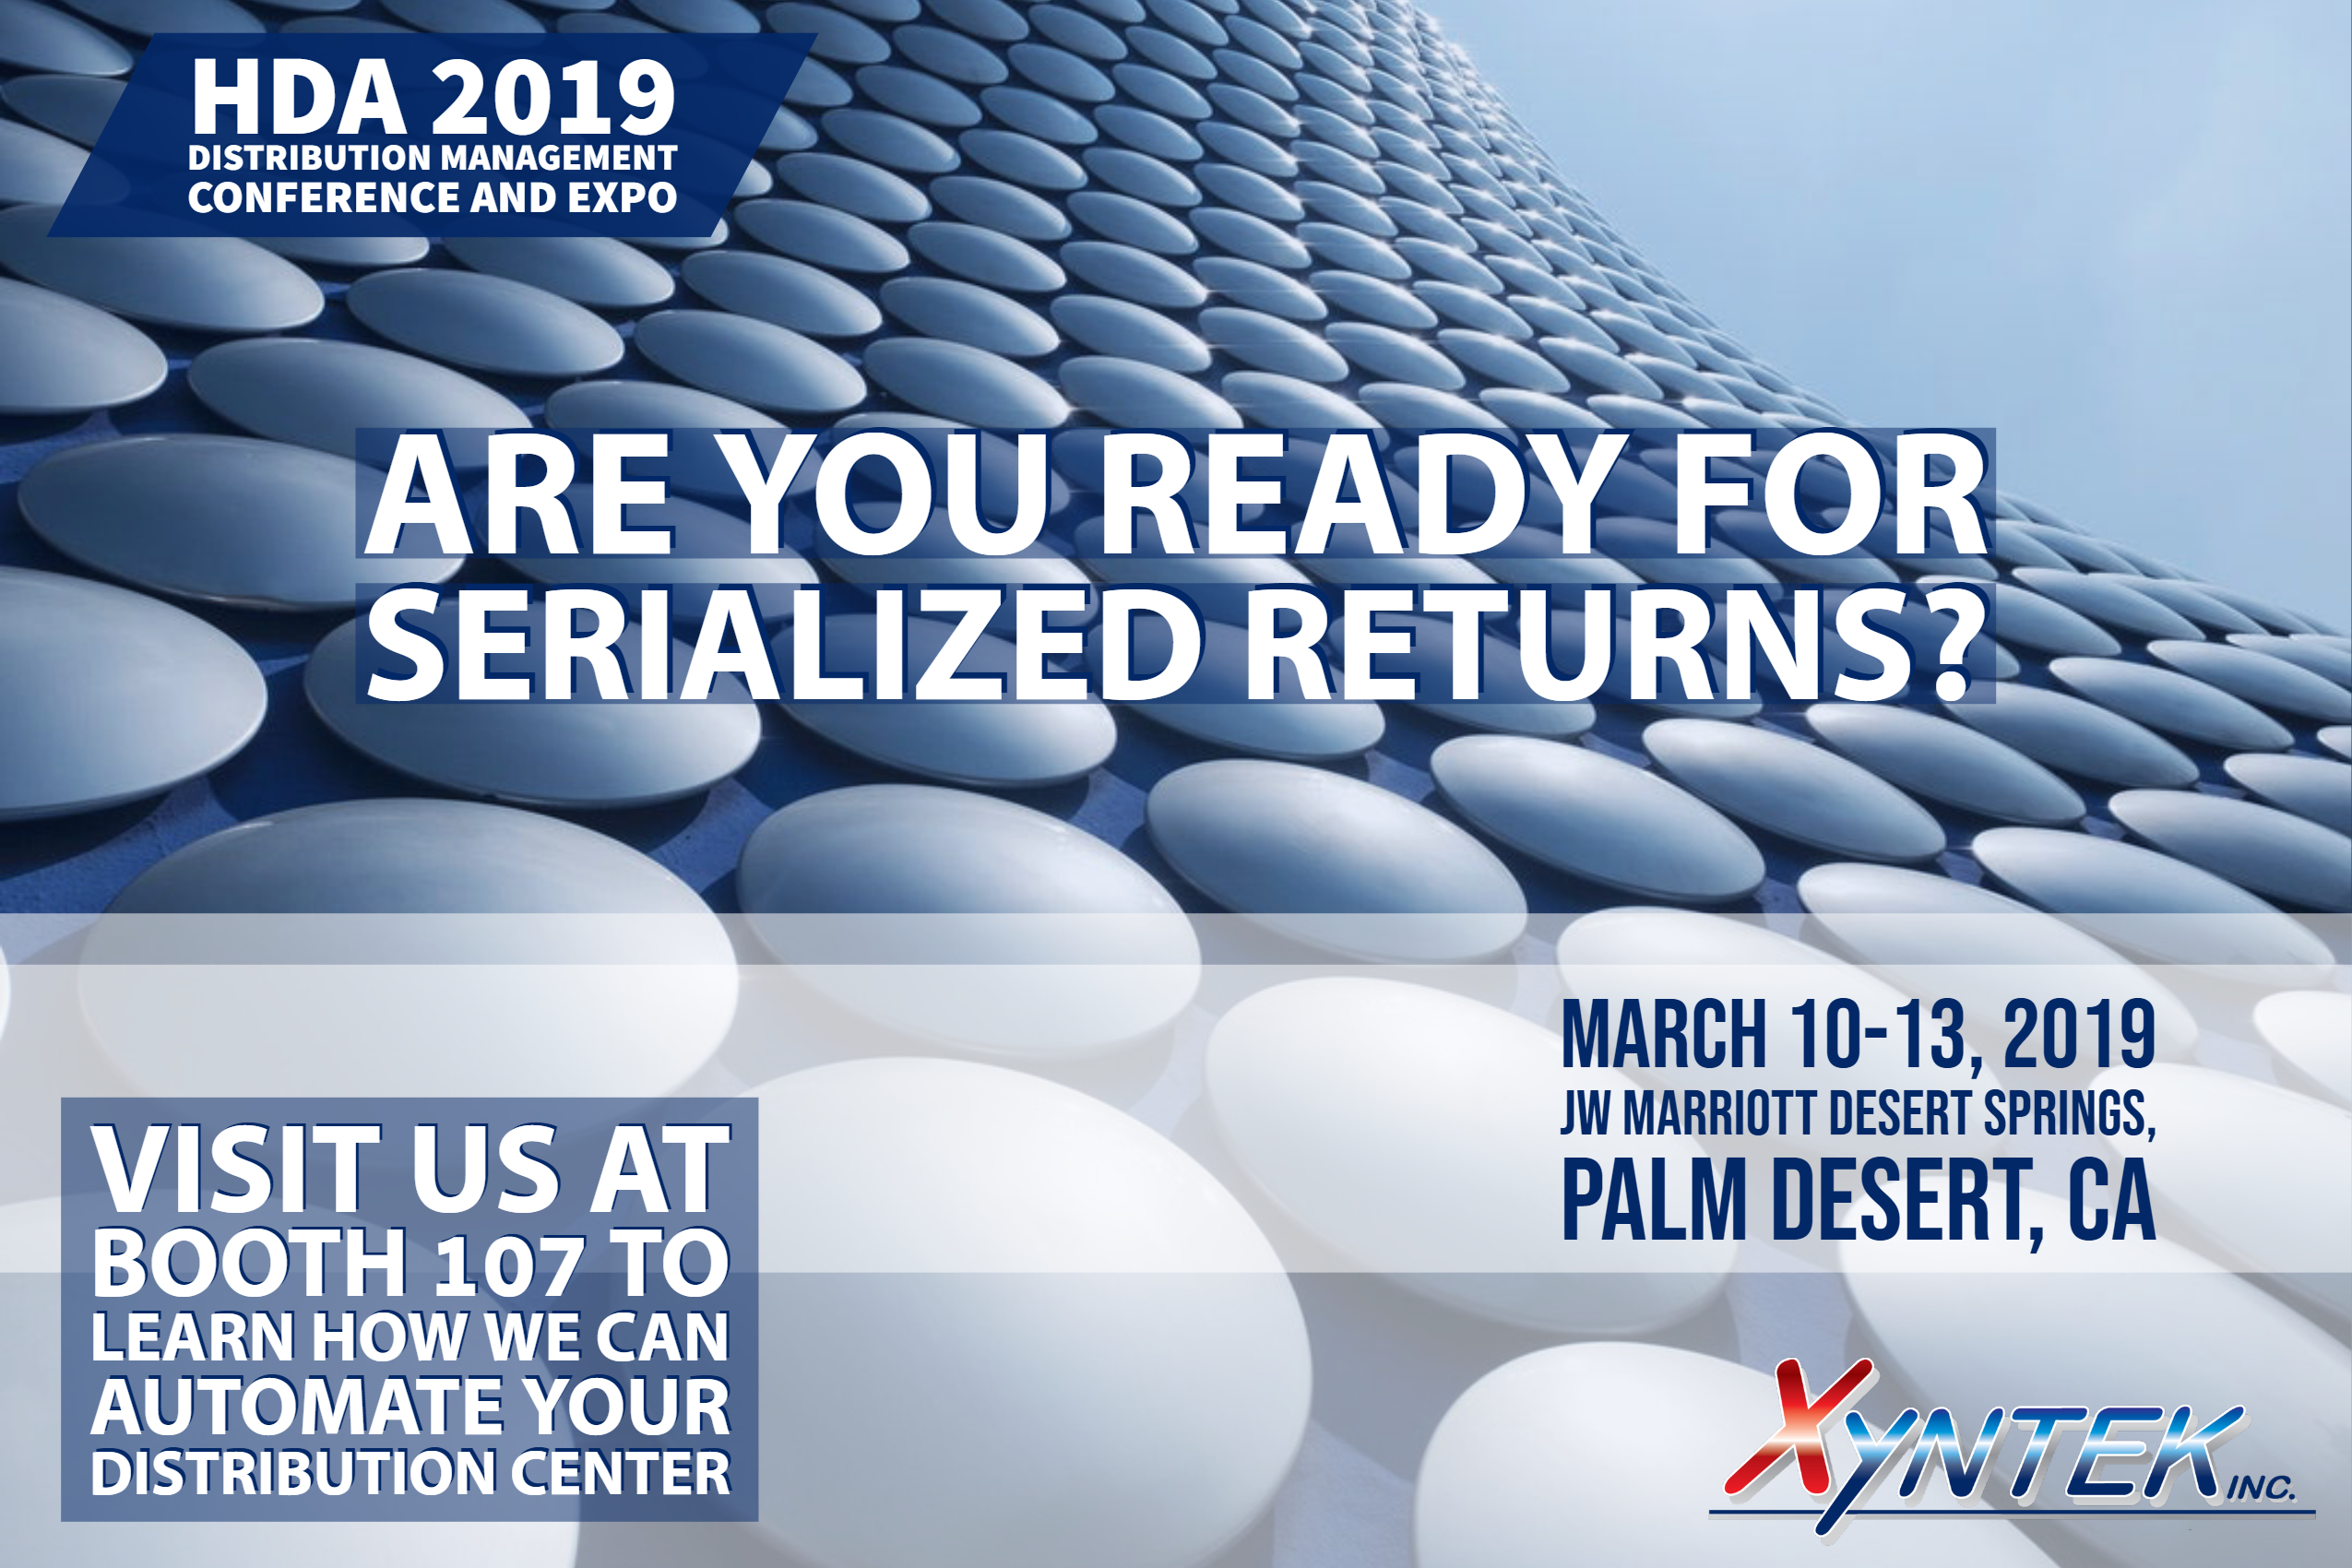 HDA 2019 Distribution Management Conference and Expo